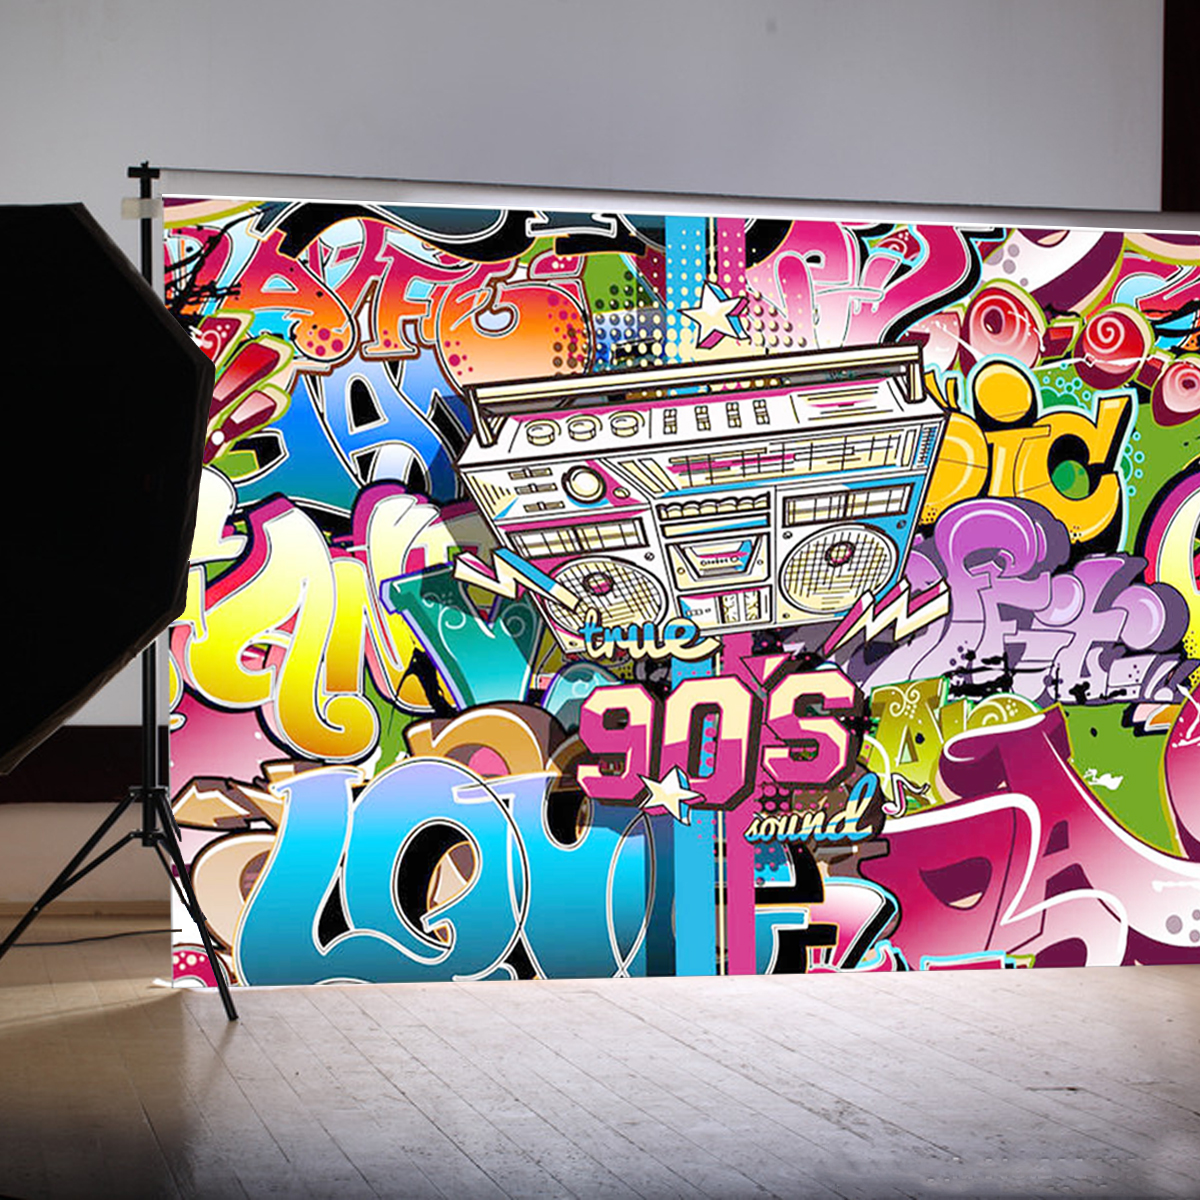 Freya 210x150cm vinyl photographic background 90s hip hop backdrop party themed decoration for photography studio